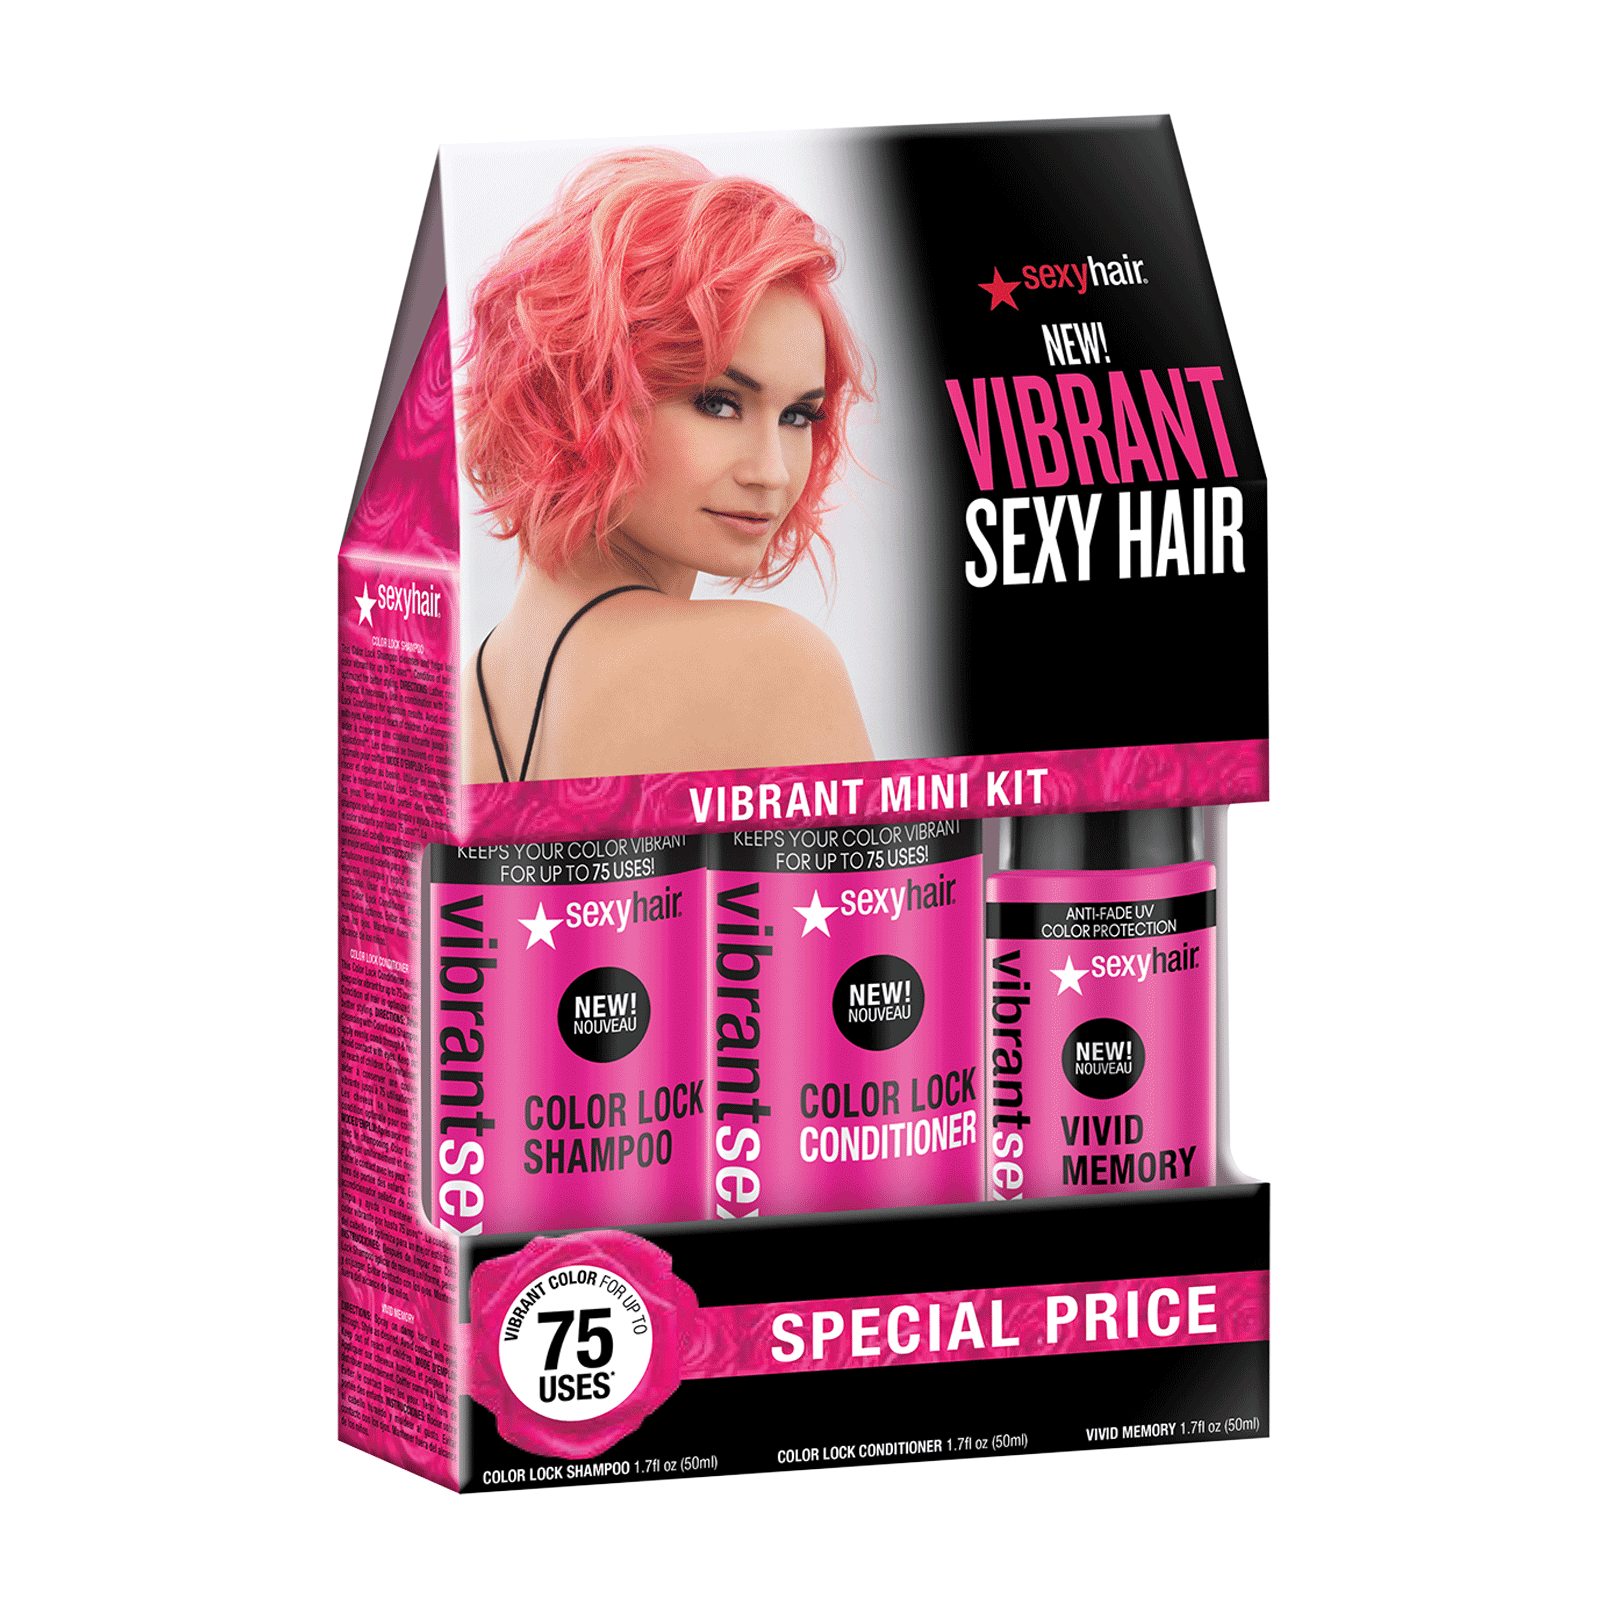 Vibrant Color Lock Mini Shampoo, Conditioner, Blow Dry Spray